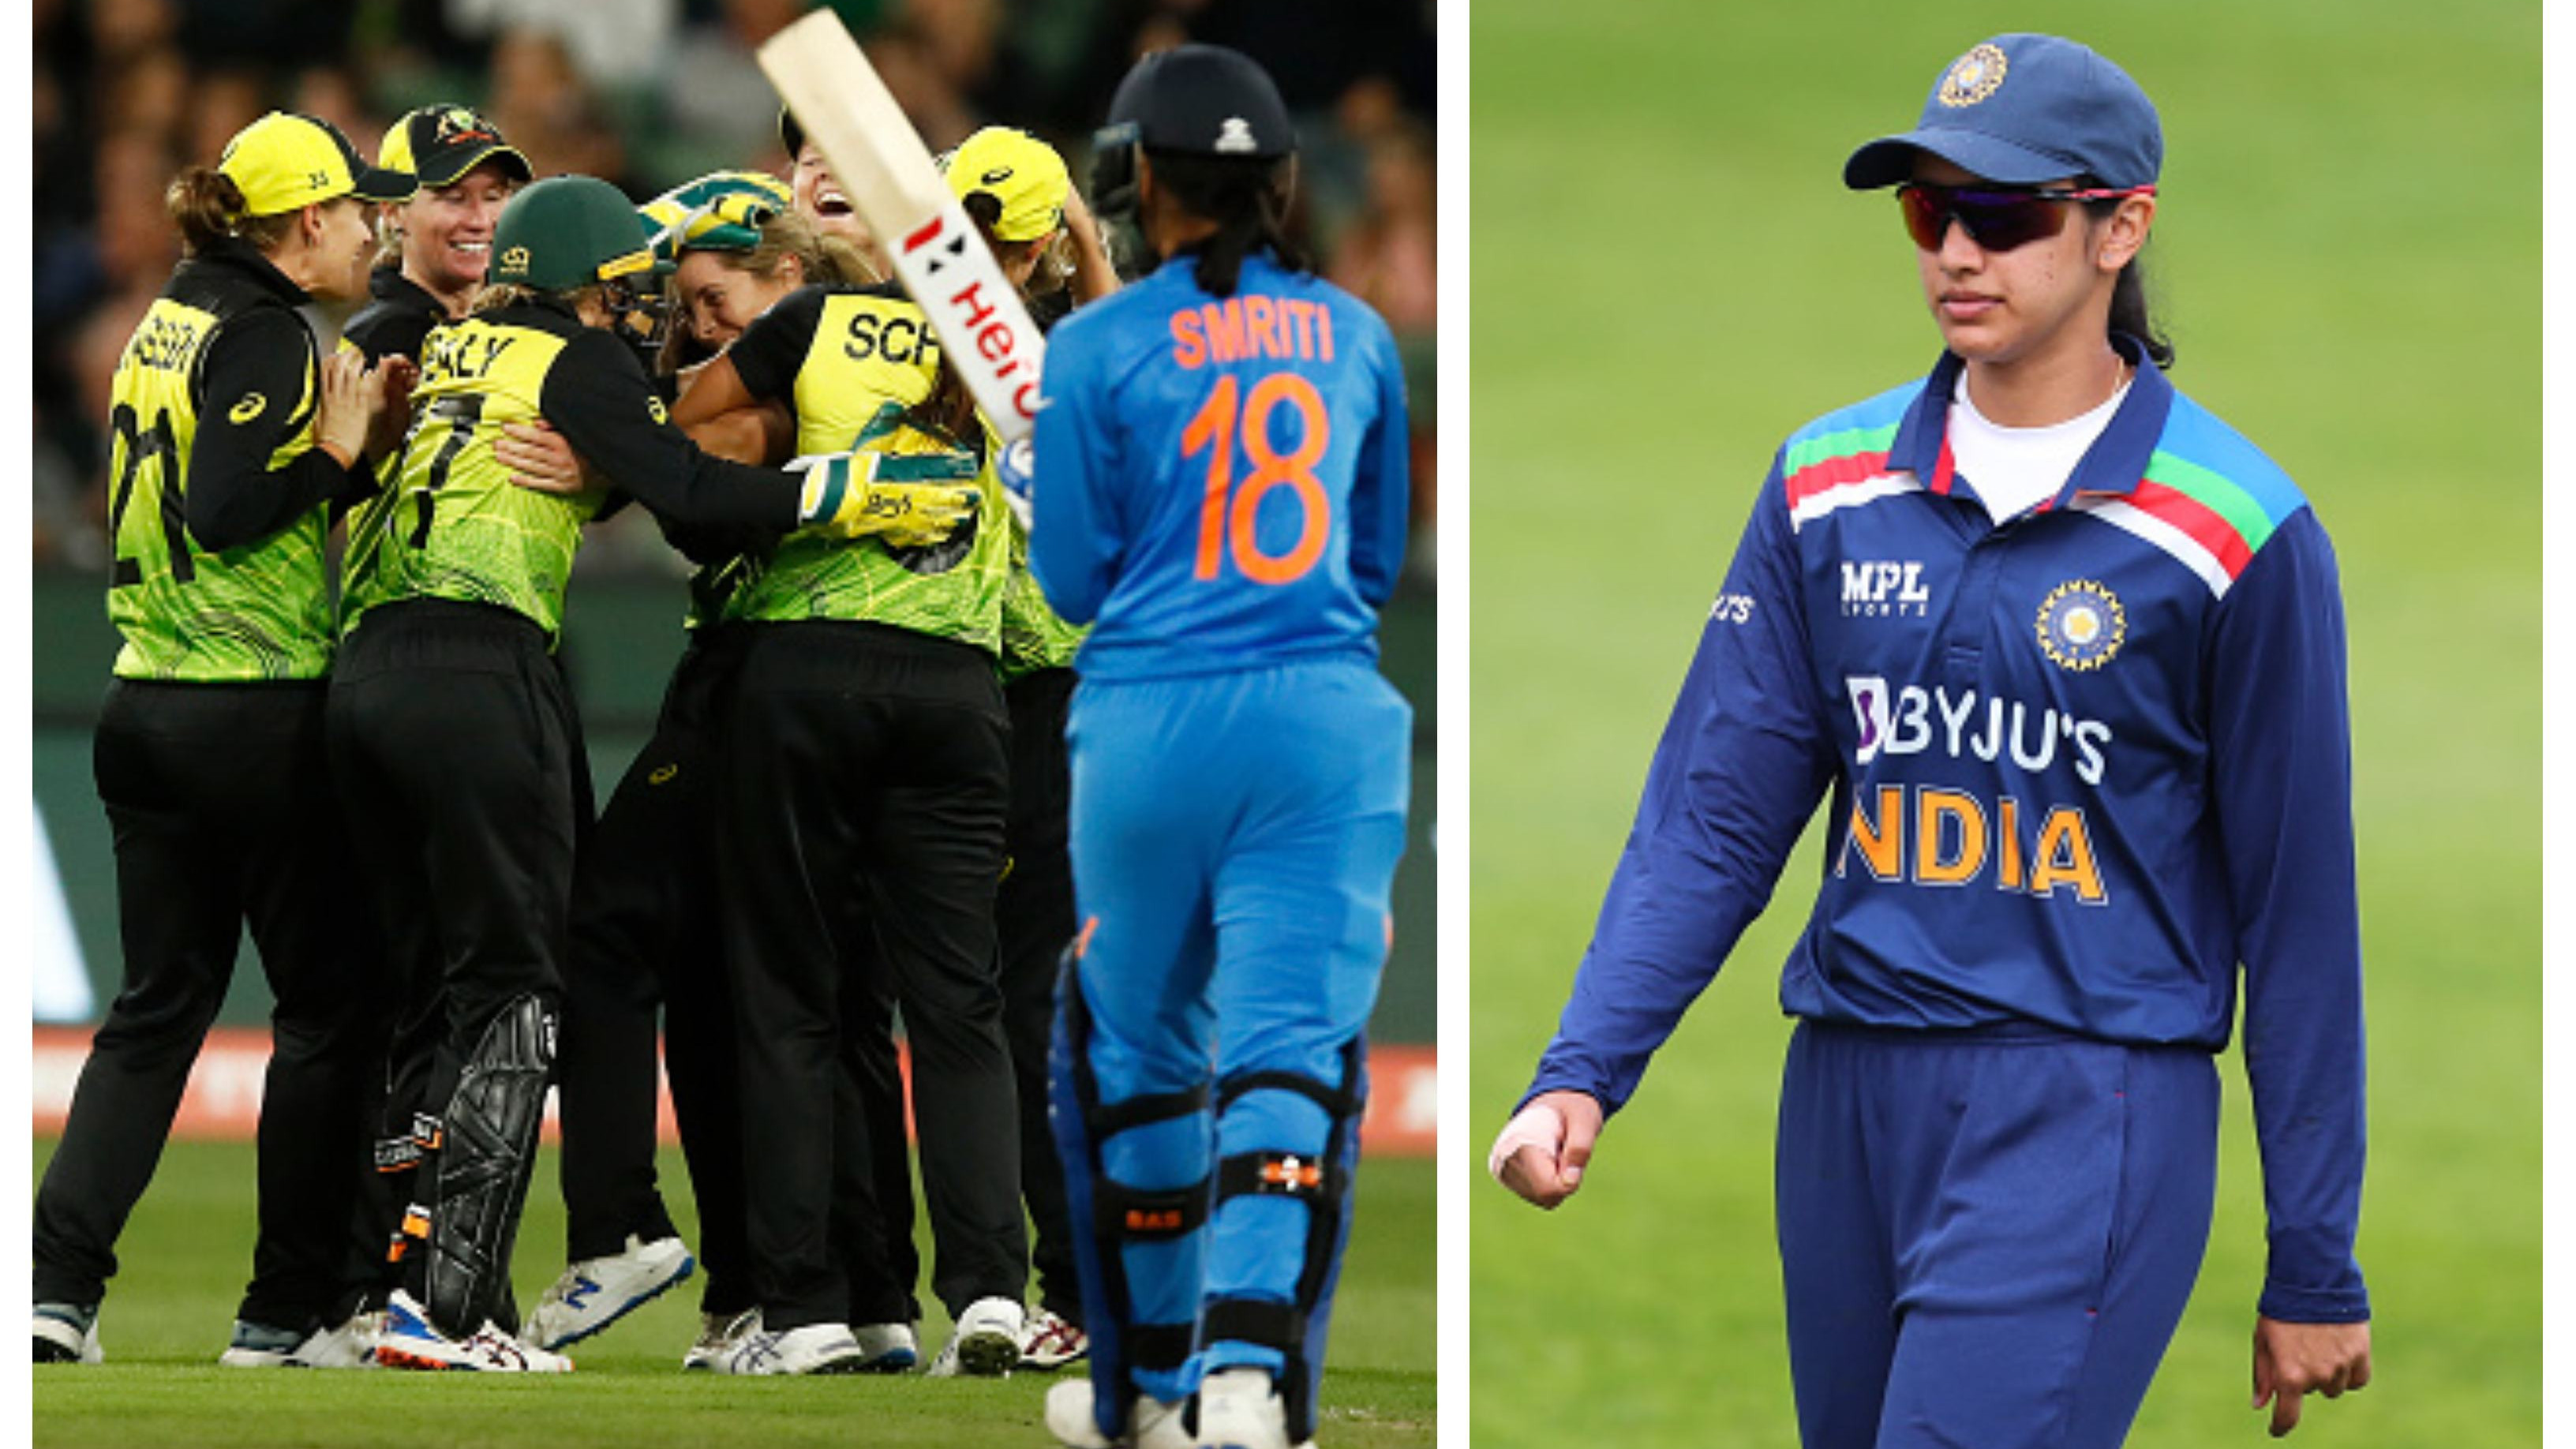 AUSW v INDW 2021: Smriti Mandhana says Indian team has grown massively since T20 World Cup loss to Australia